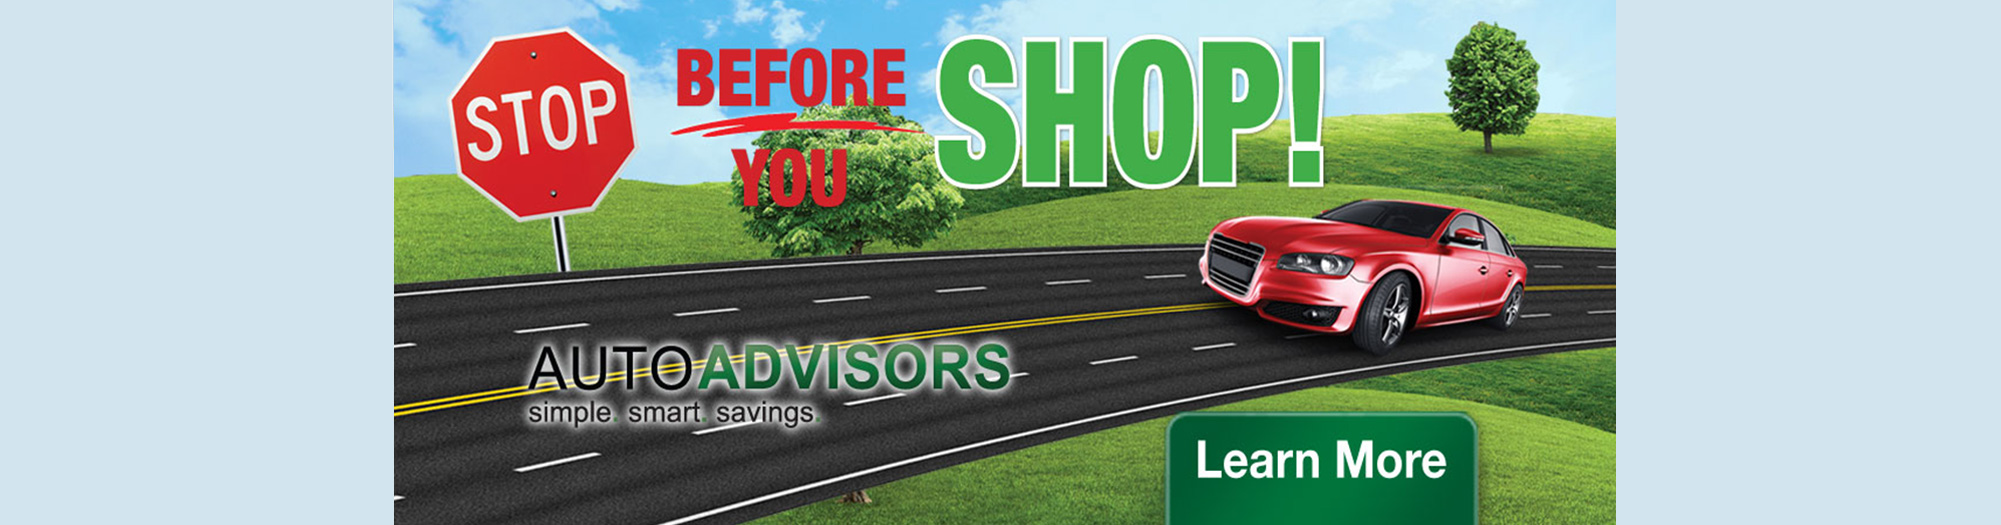 Stop before you shop. Auto Advisors